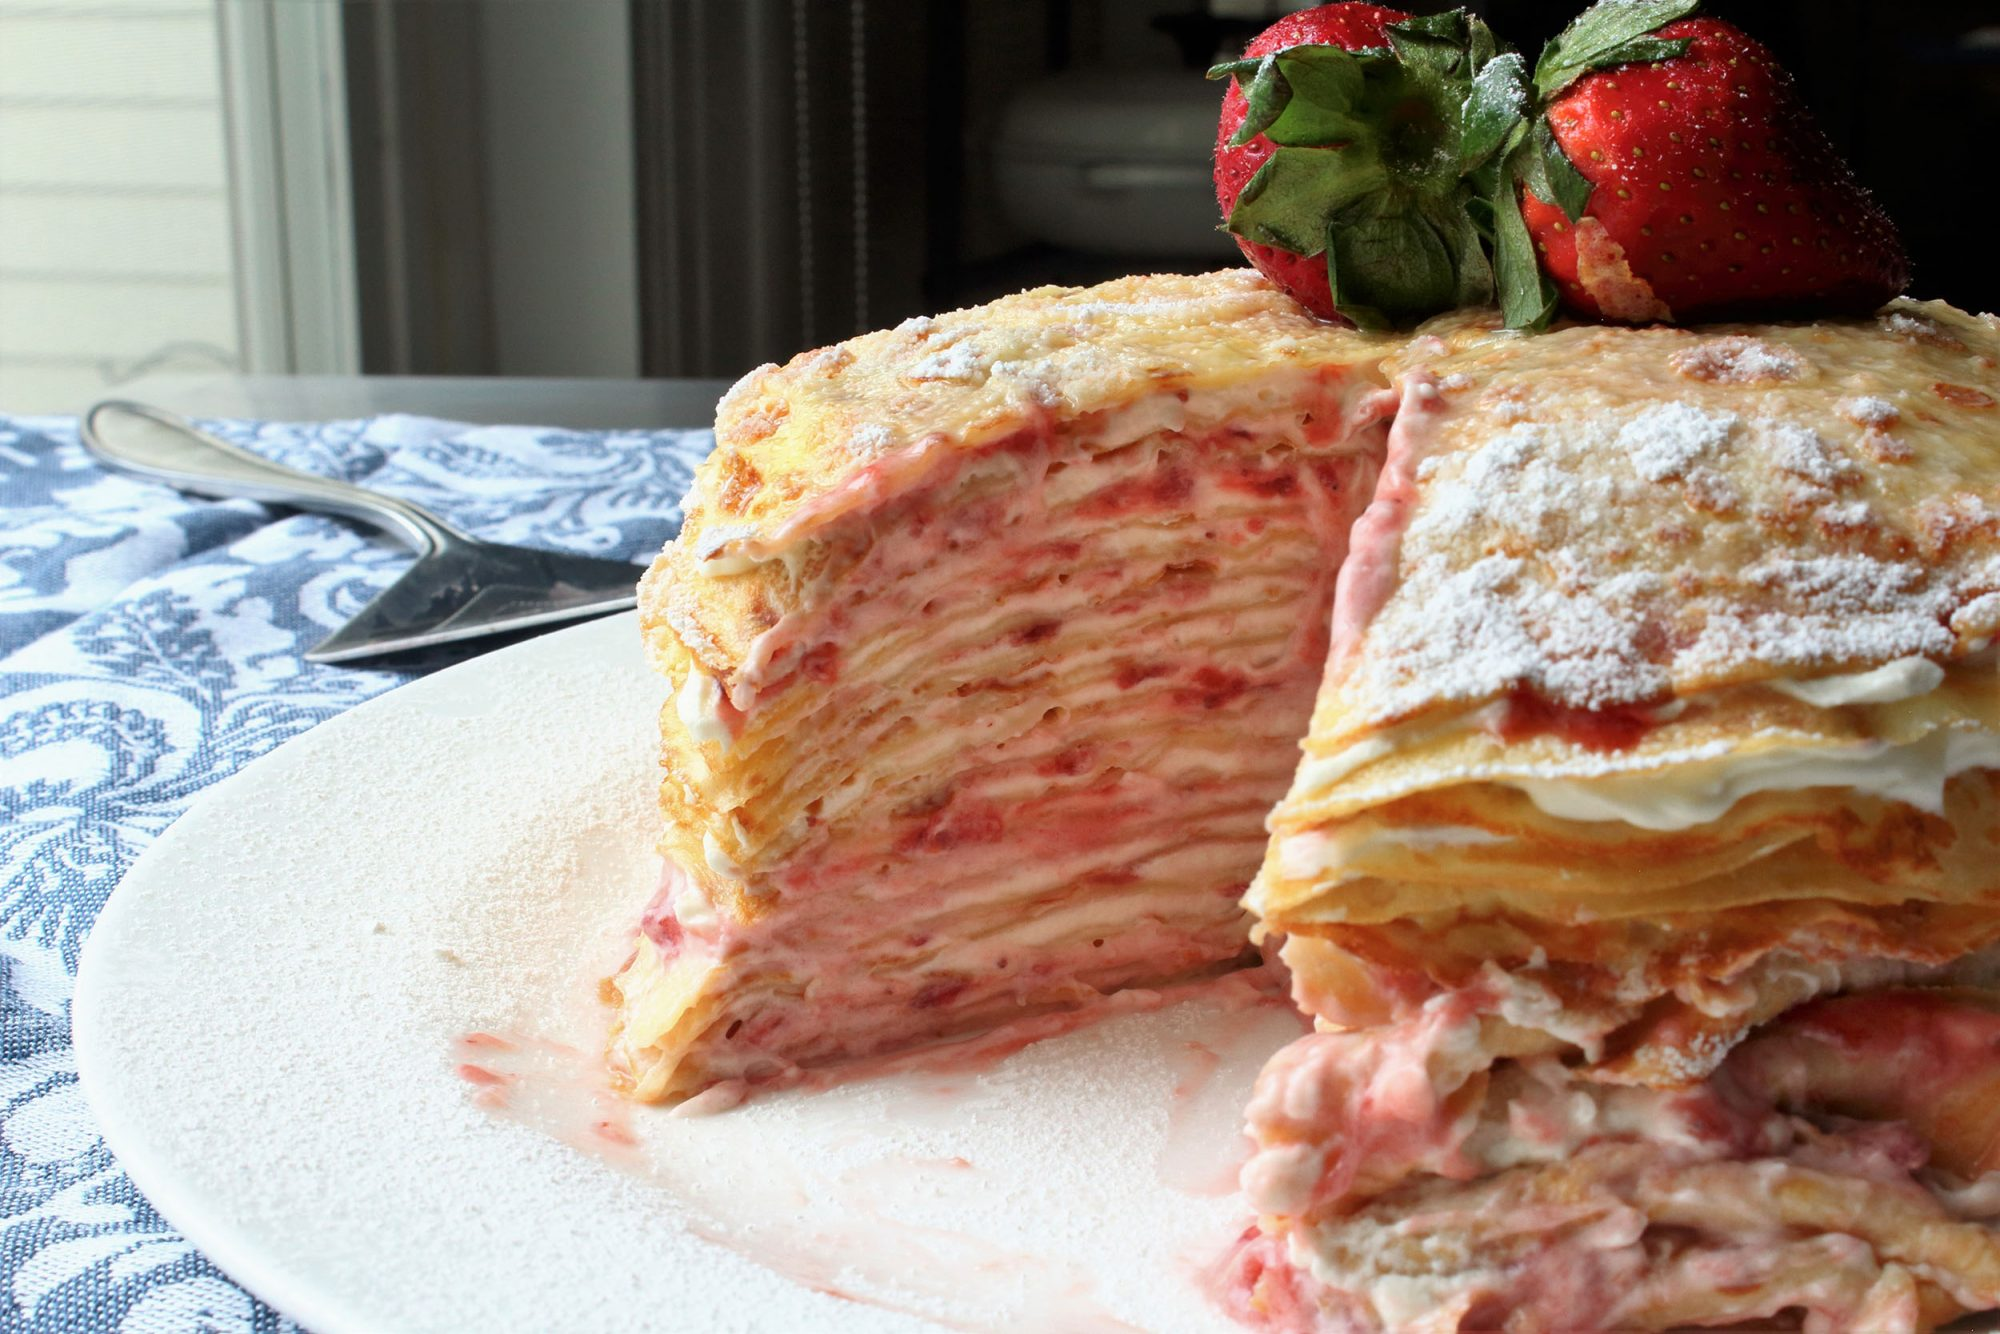 Chef John's Strawberry Crepe Cake